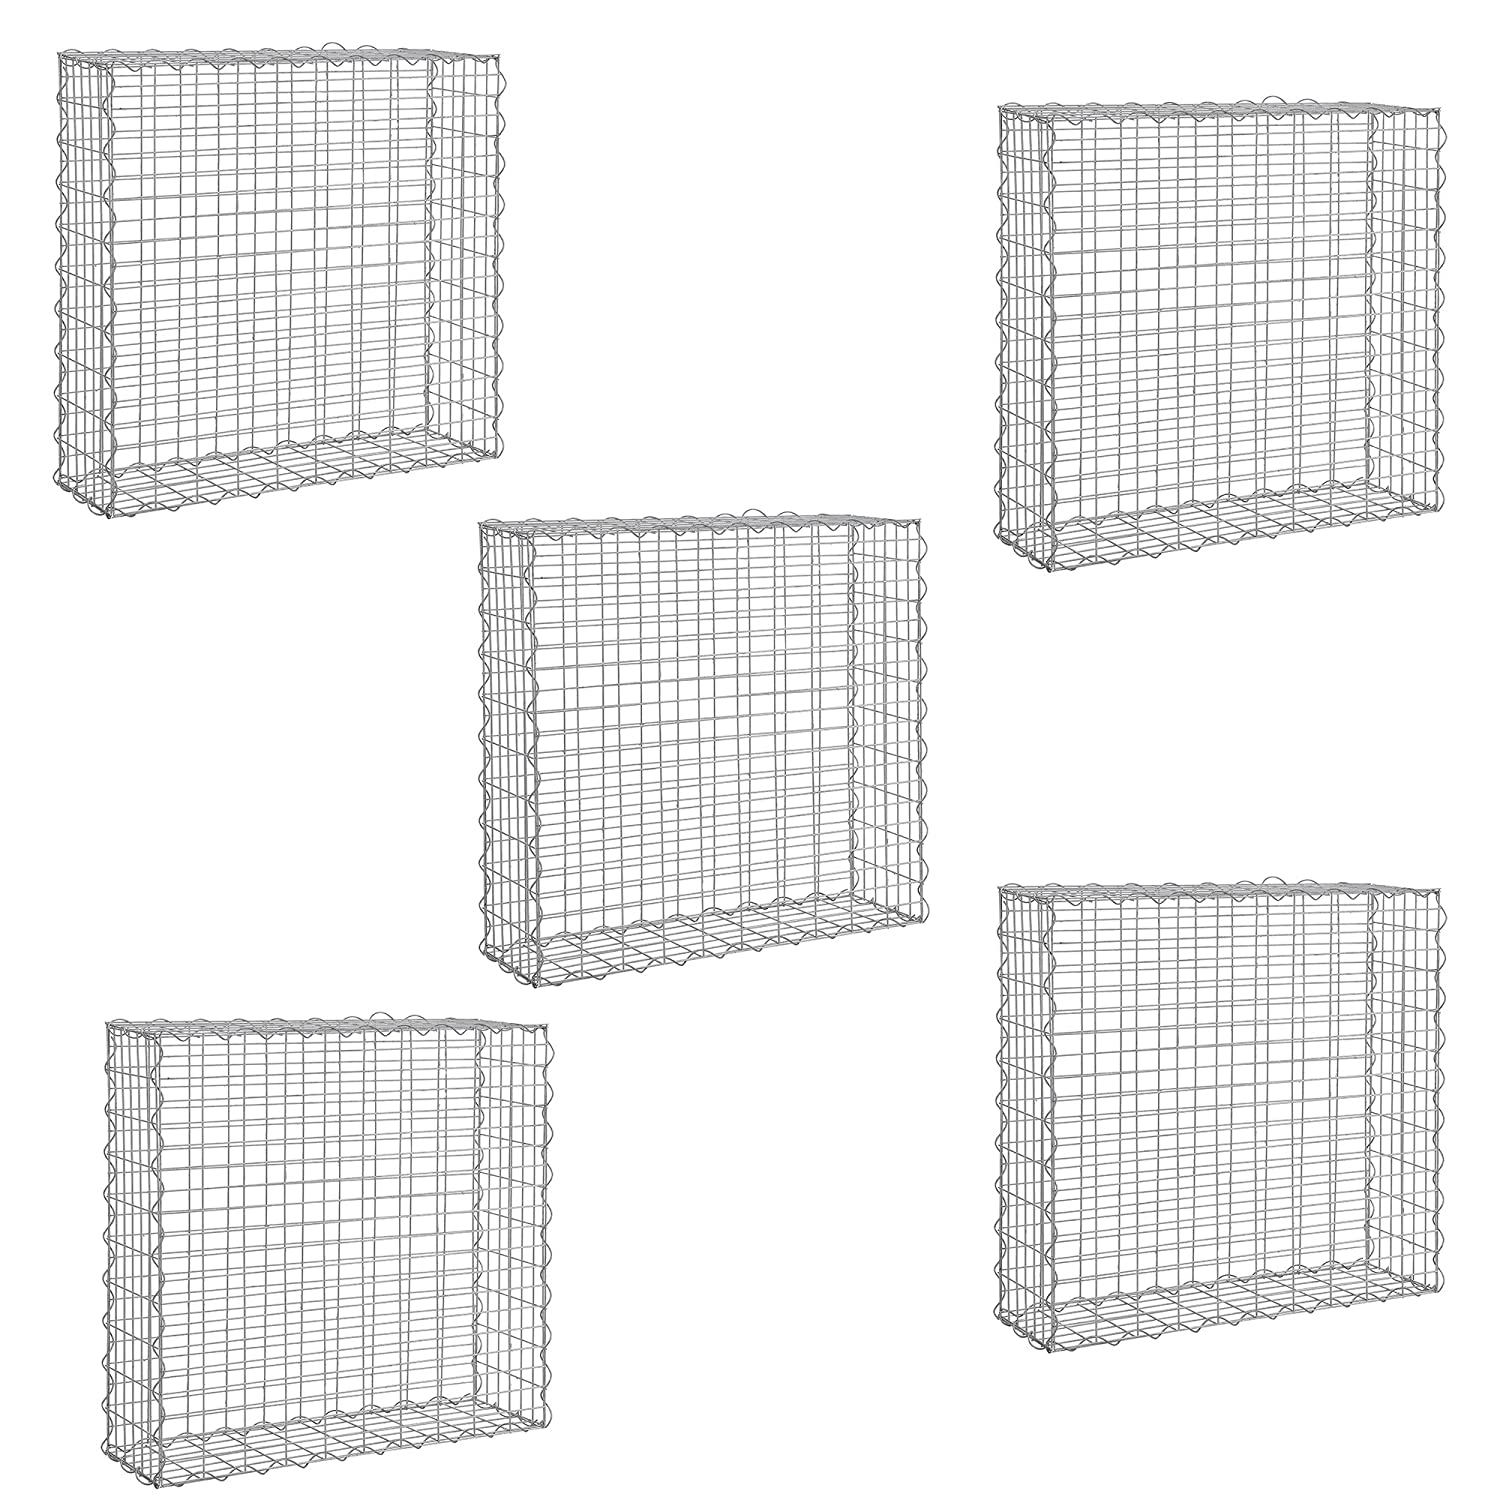 5 pieces gabion set / wall / fencing / sight protection / garden decoration / wire mesh / galvanized [pro.tec]®